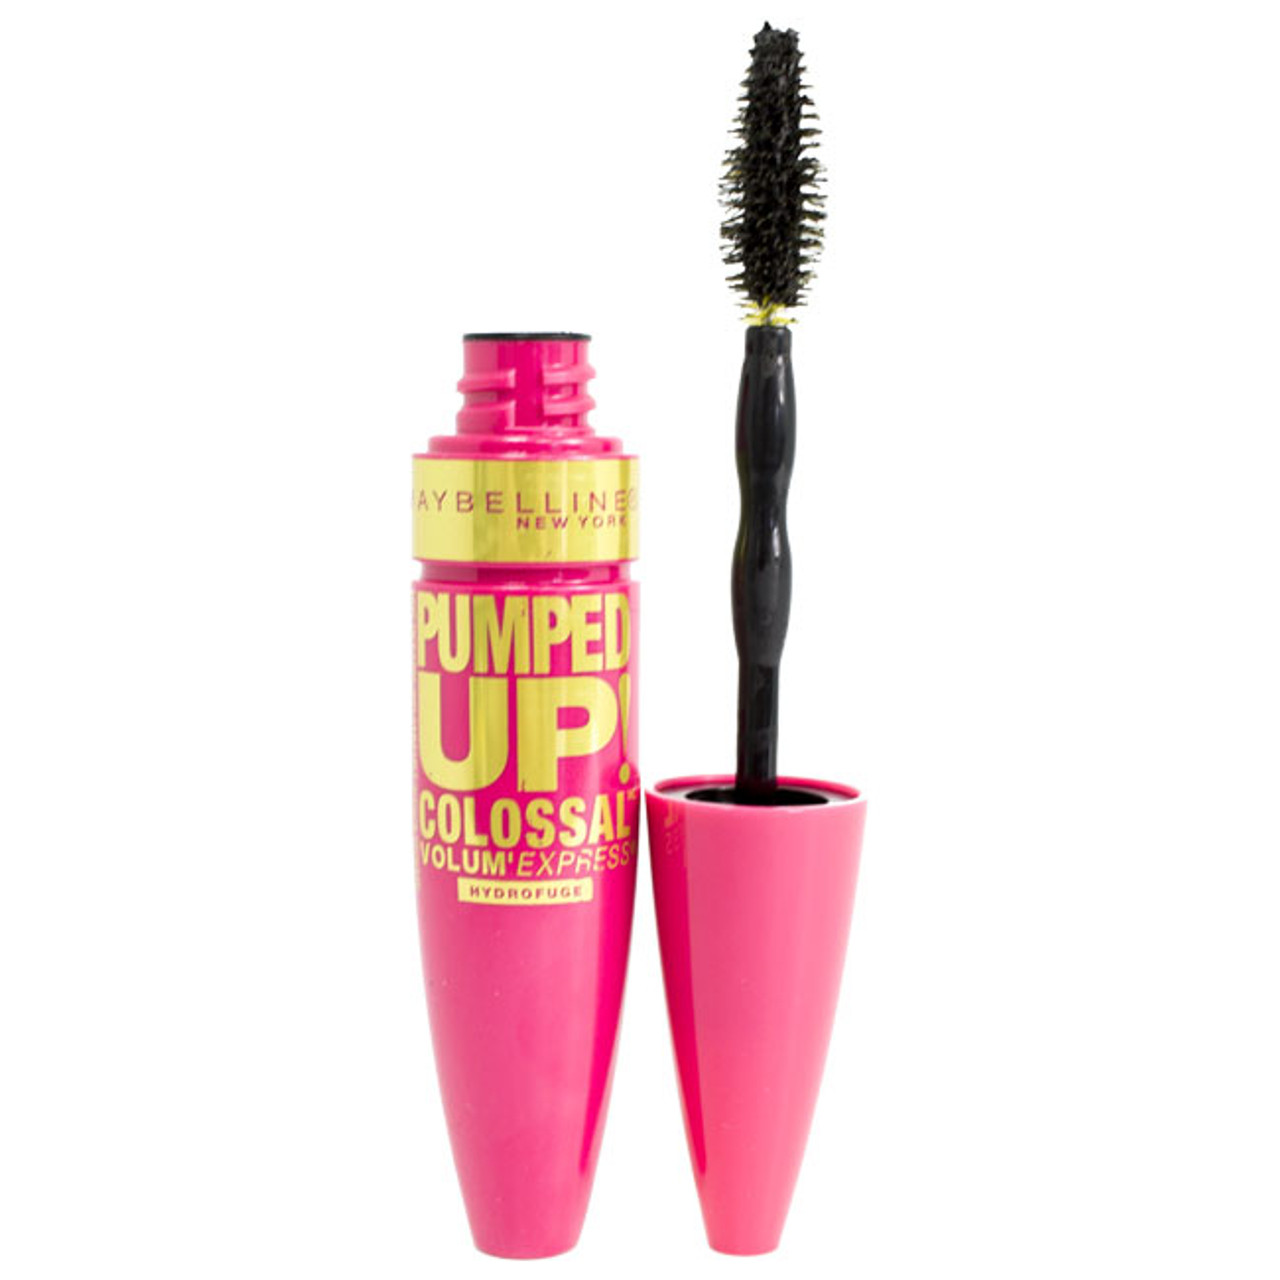 1564c7cc03a Maybelline Volum'Express Pumped Up! Colossal Waterproof Mascara -  BuyMeBeauty.com